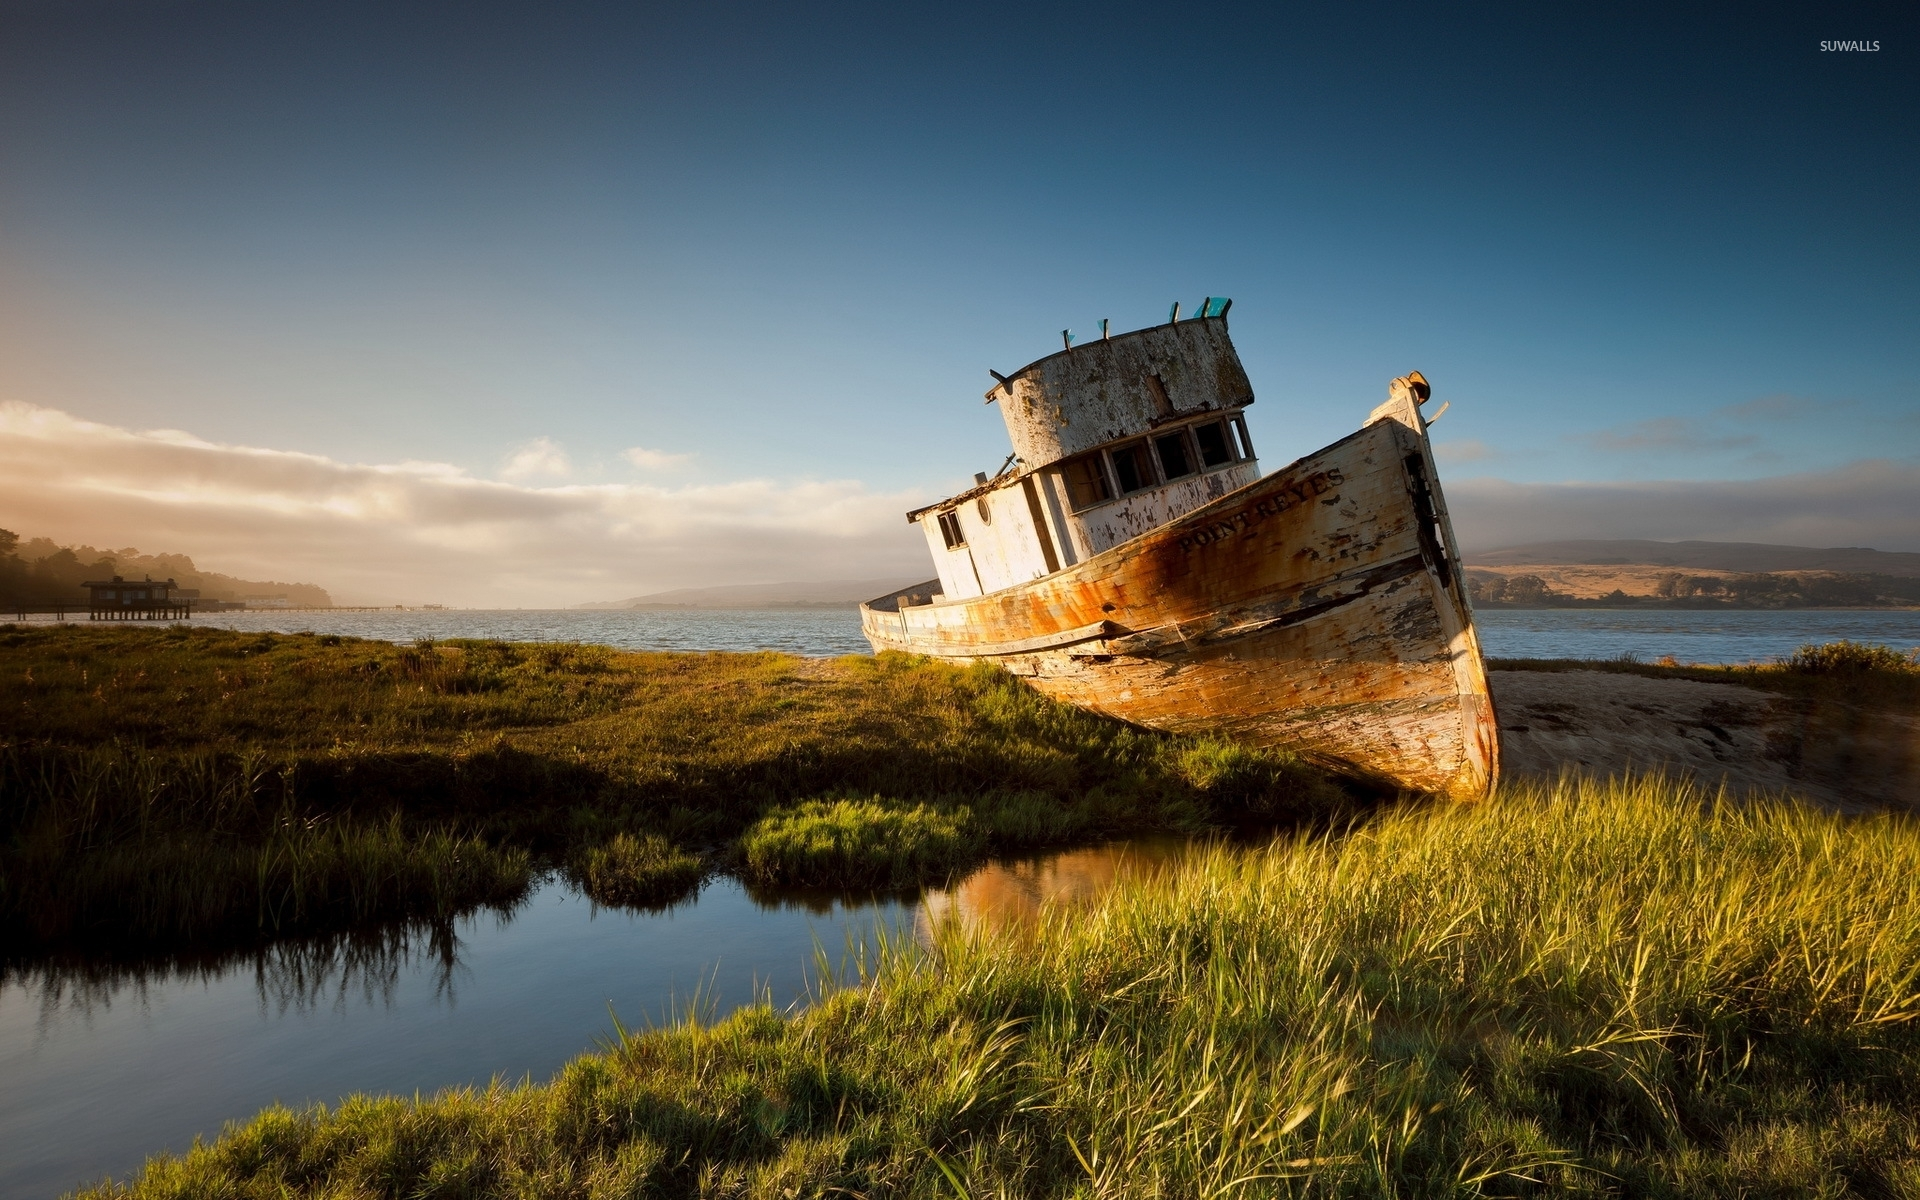 Wooden Ship Wreck At Sunset Wallpaper 1920x1200 Jpg